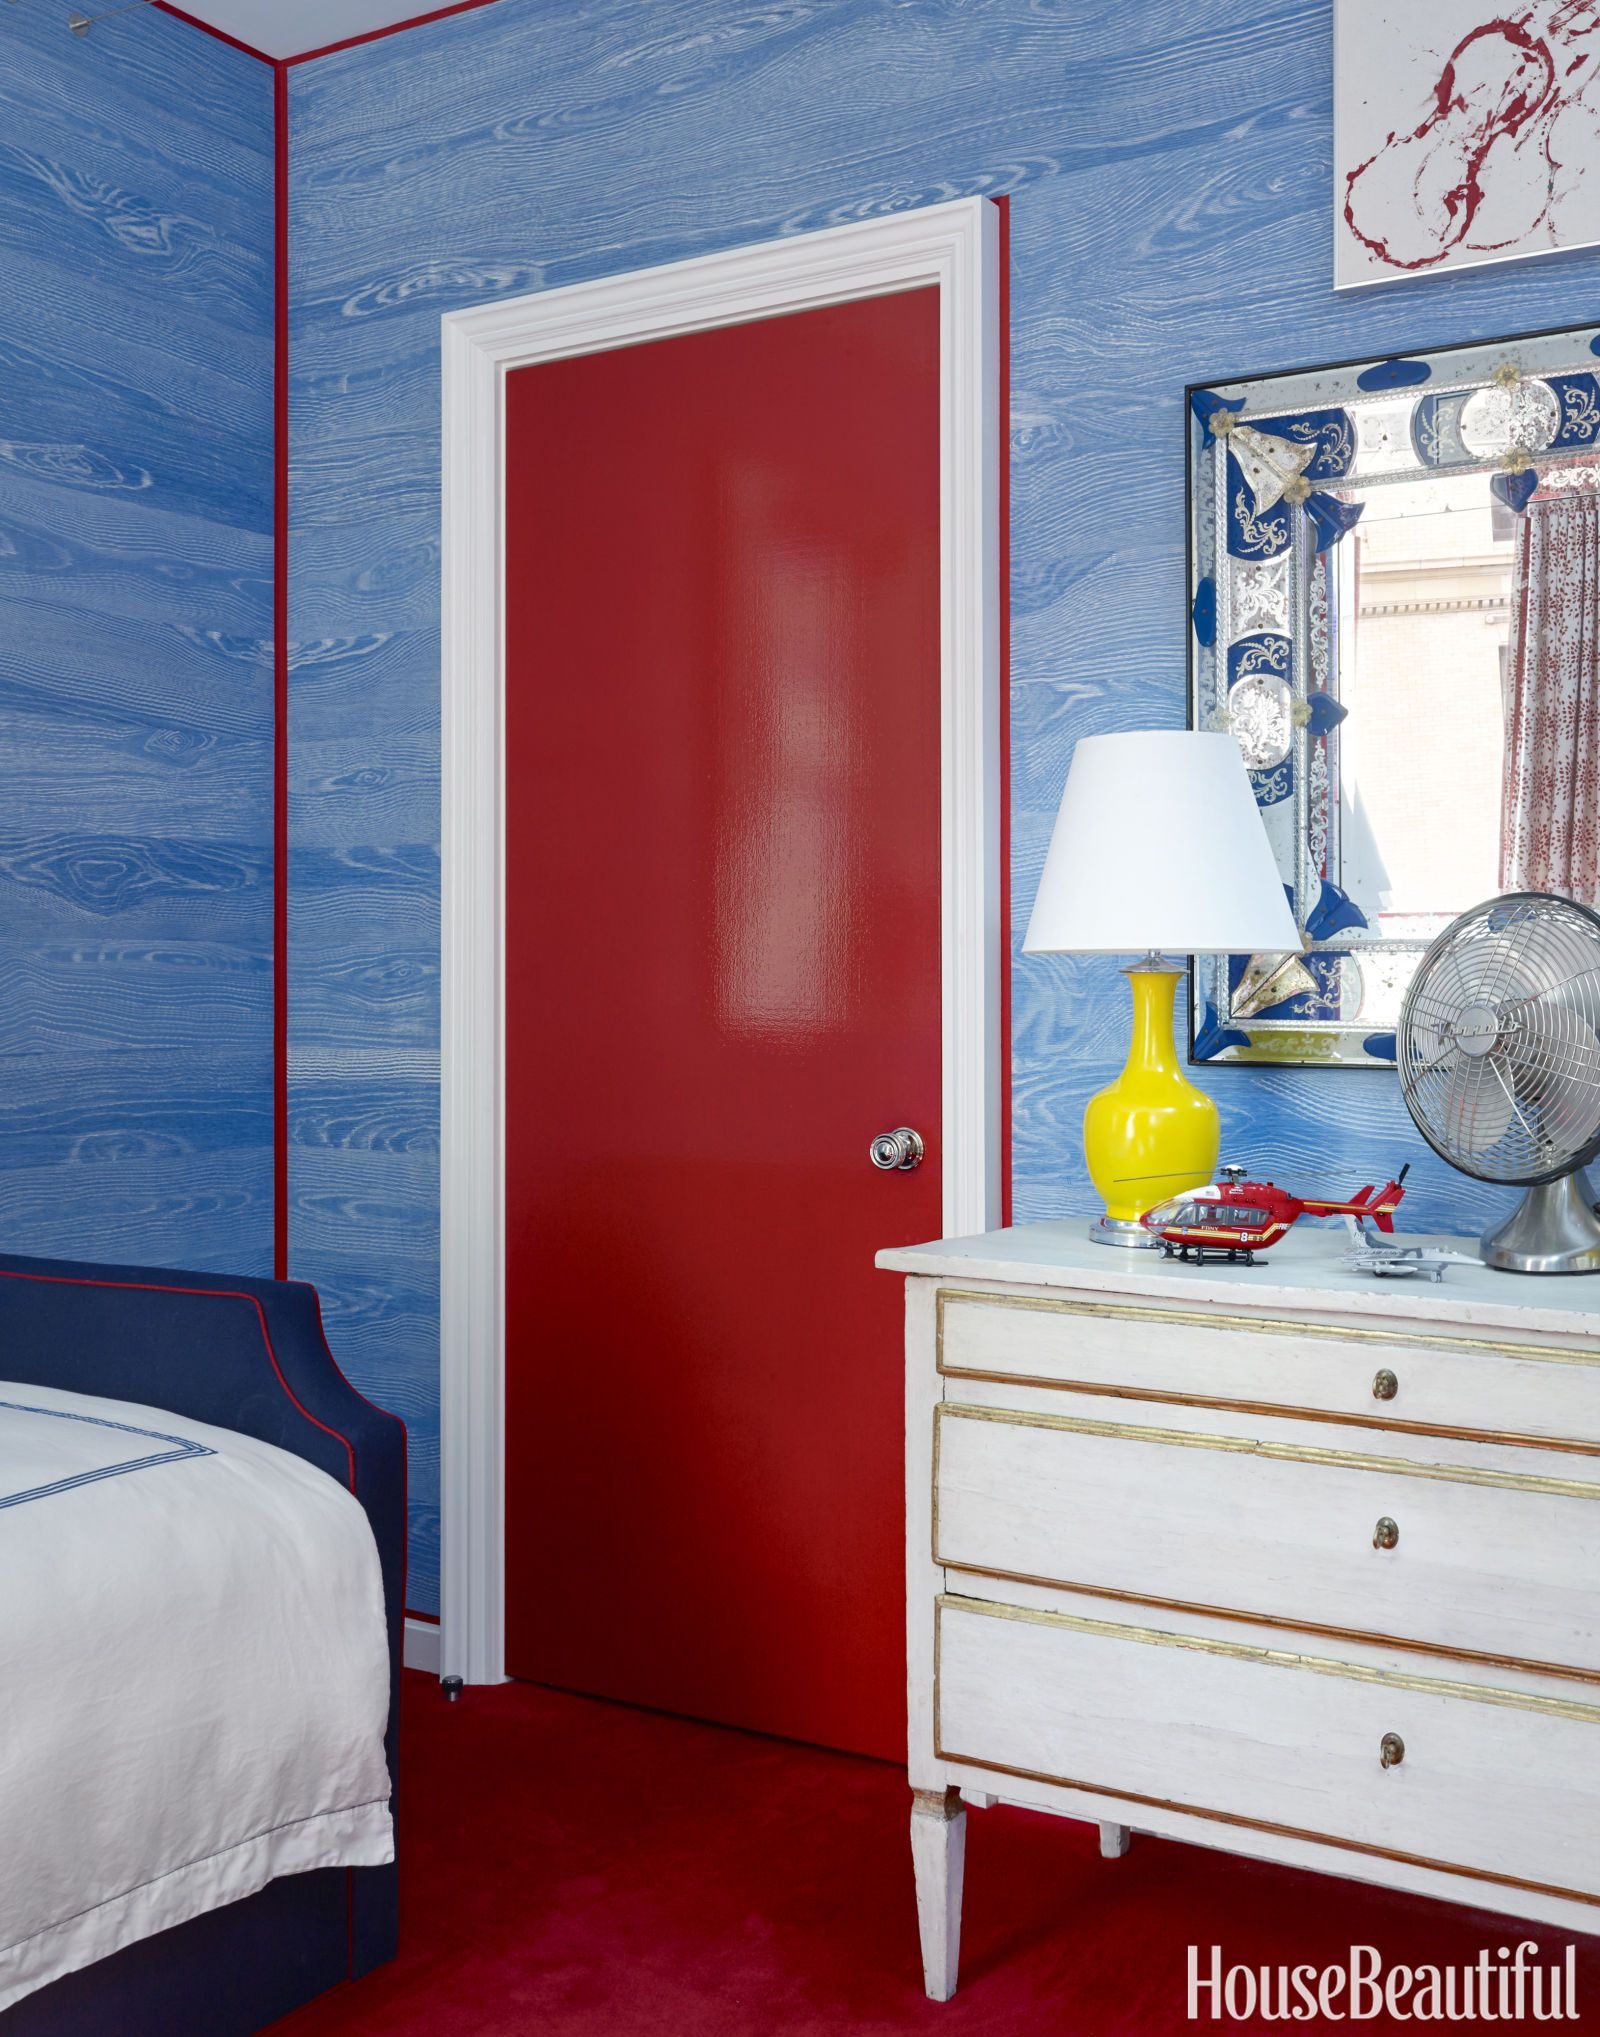 Bedroom Designs Outline these convertible kids' rooms are just genius | decorating